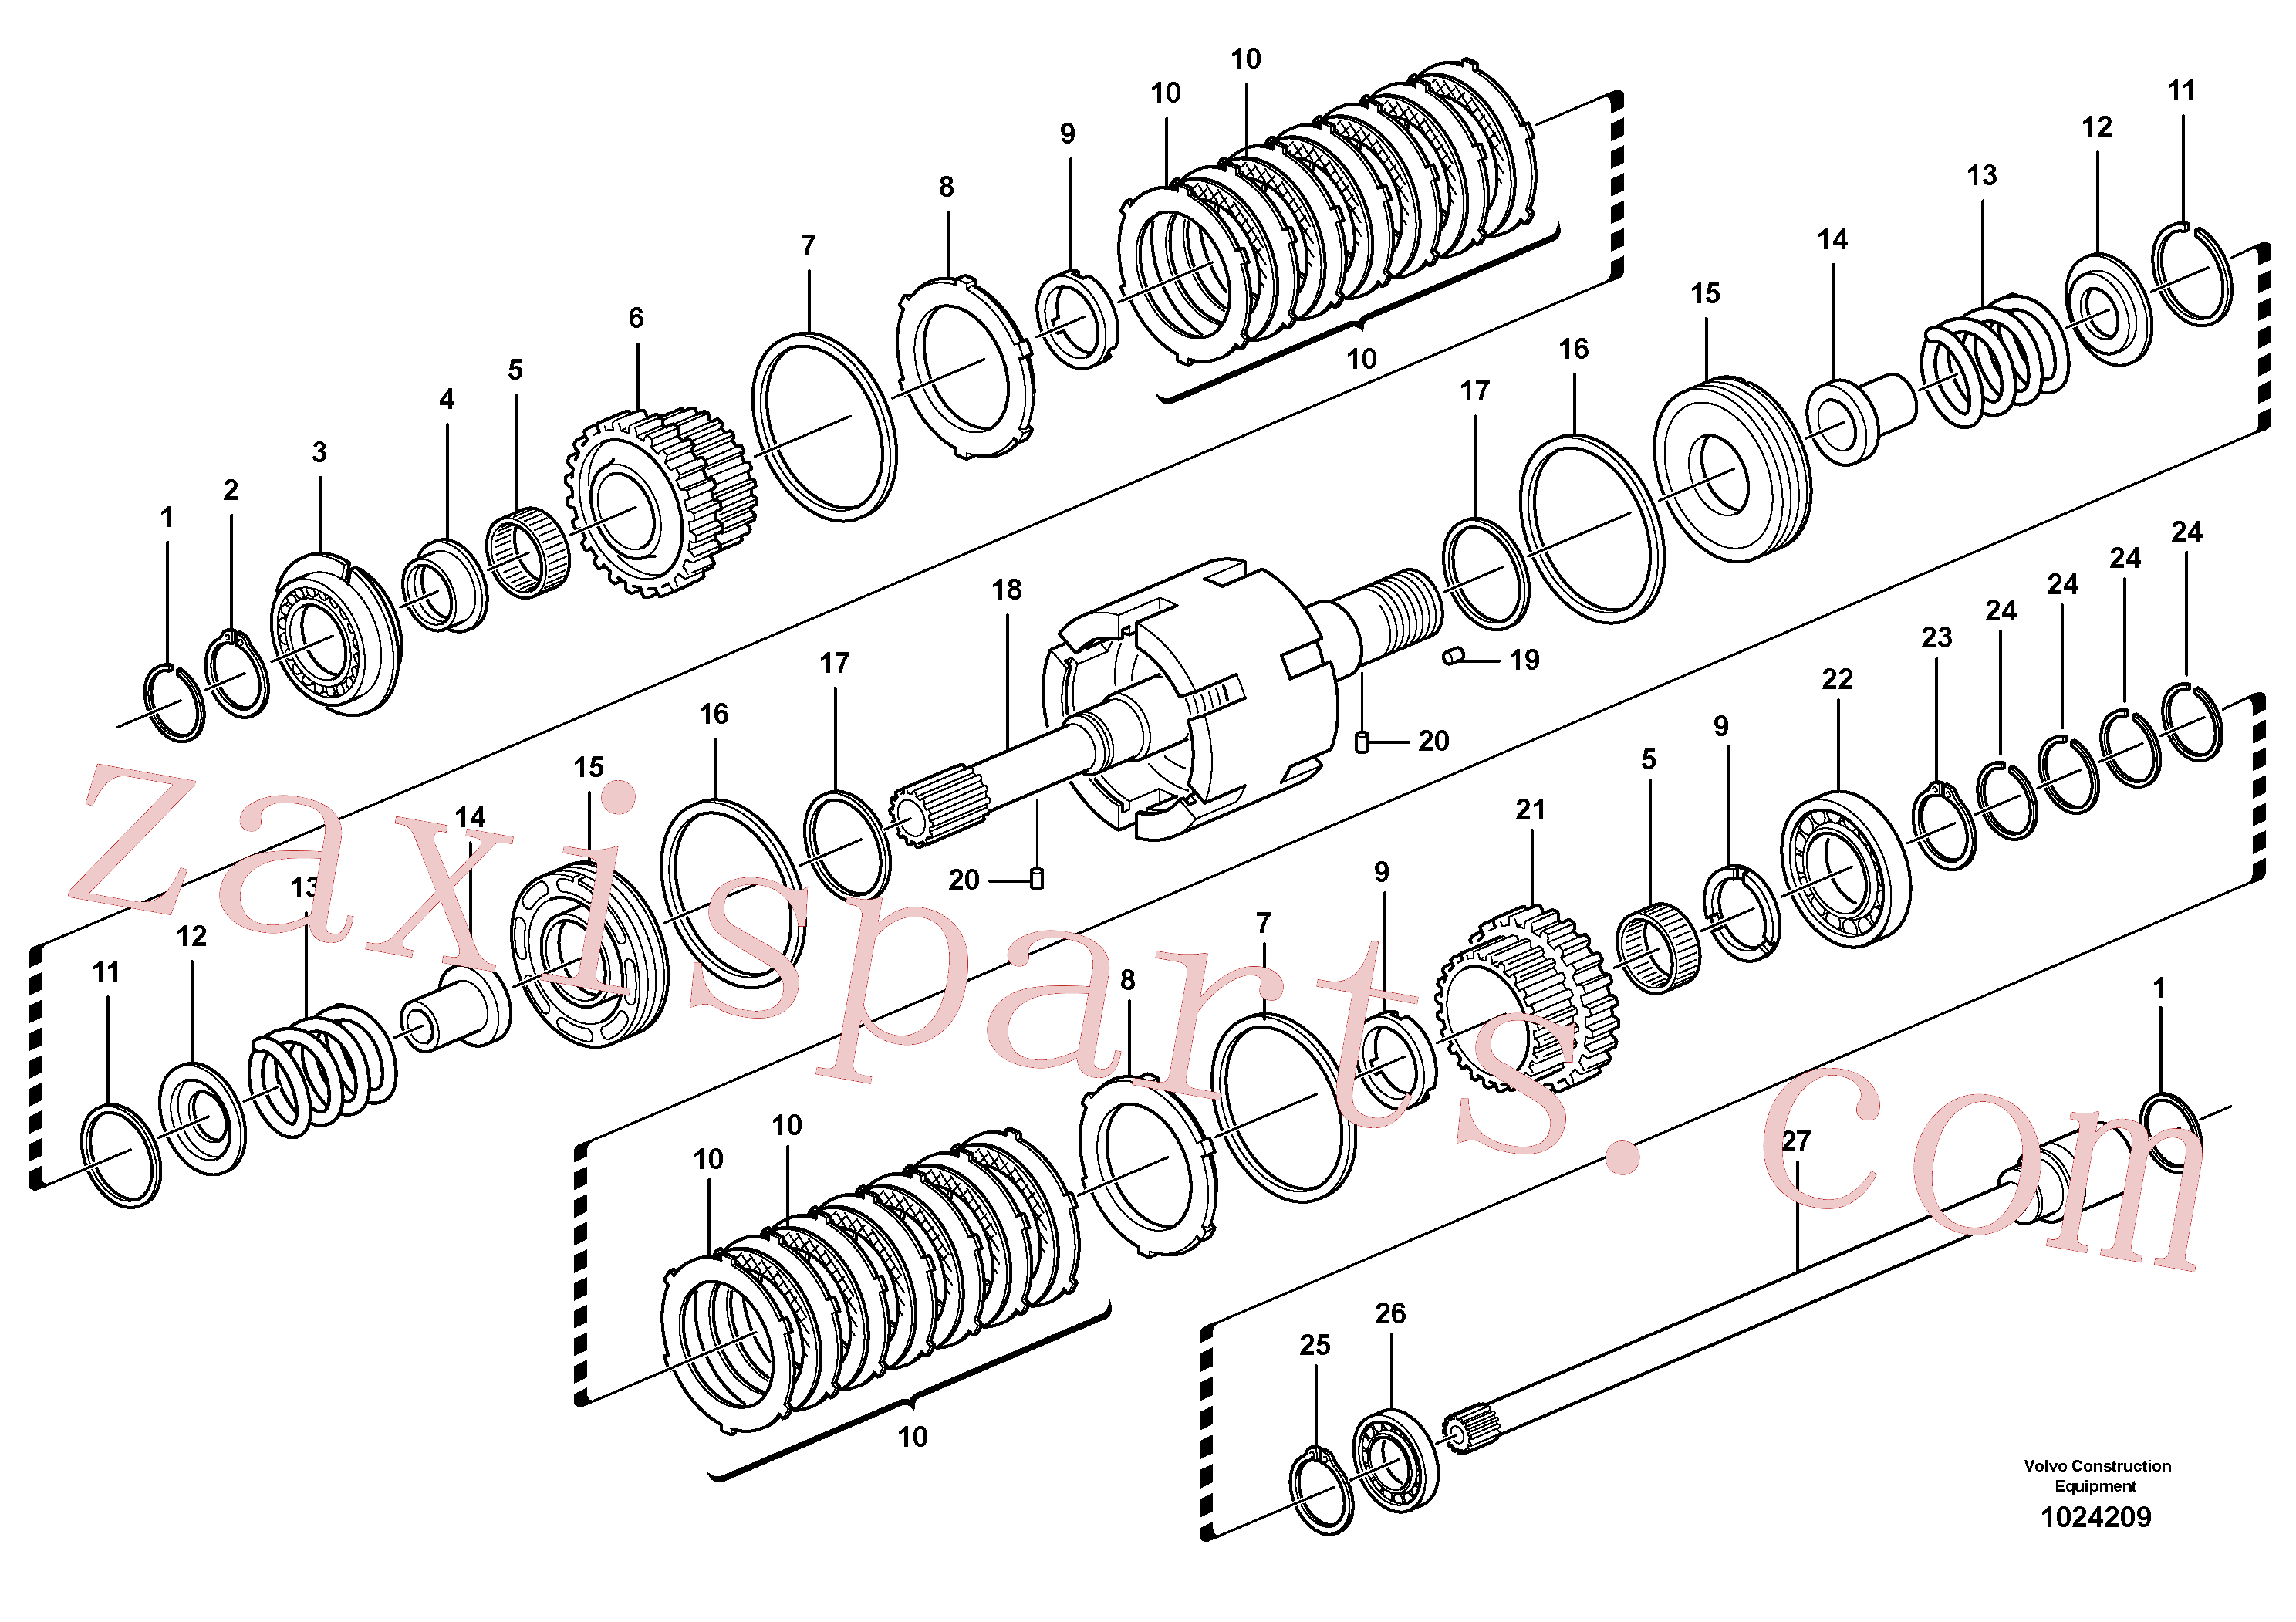 VOE11709087 for Volvo Clutch shaft forward/reverse(1024209 assembly)